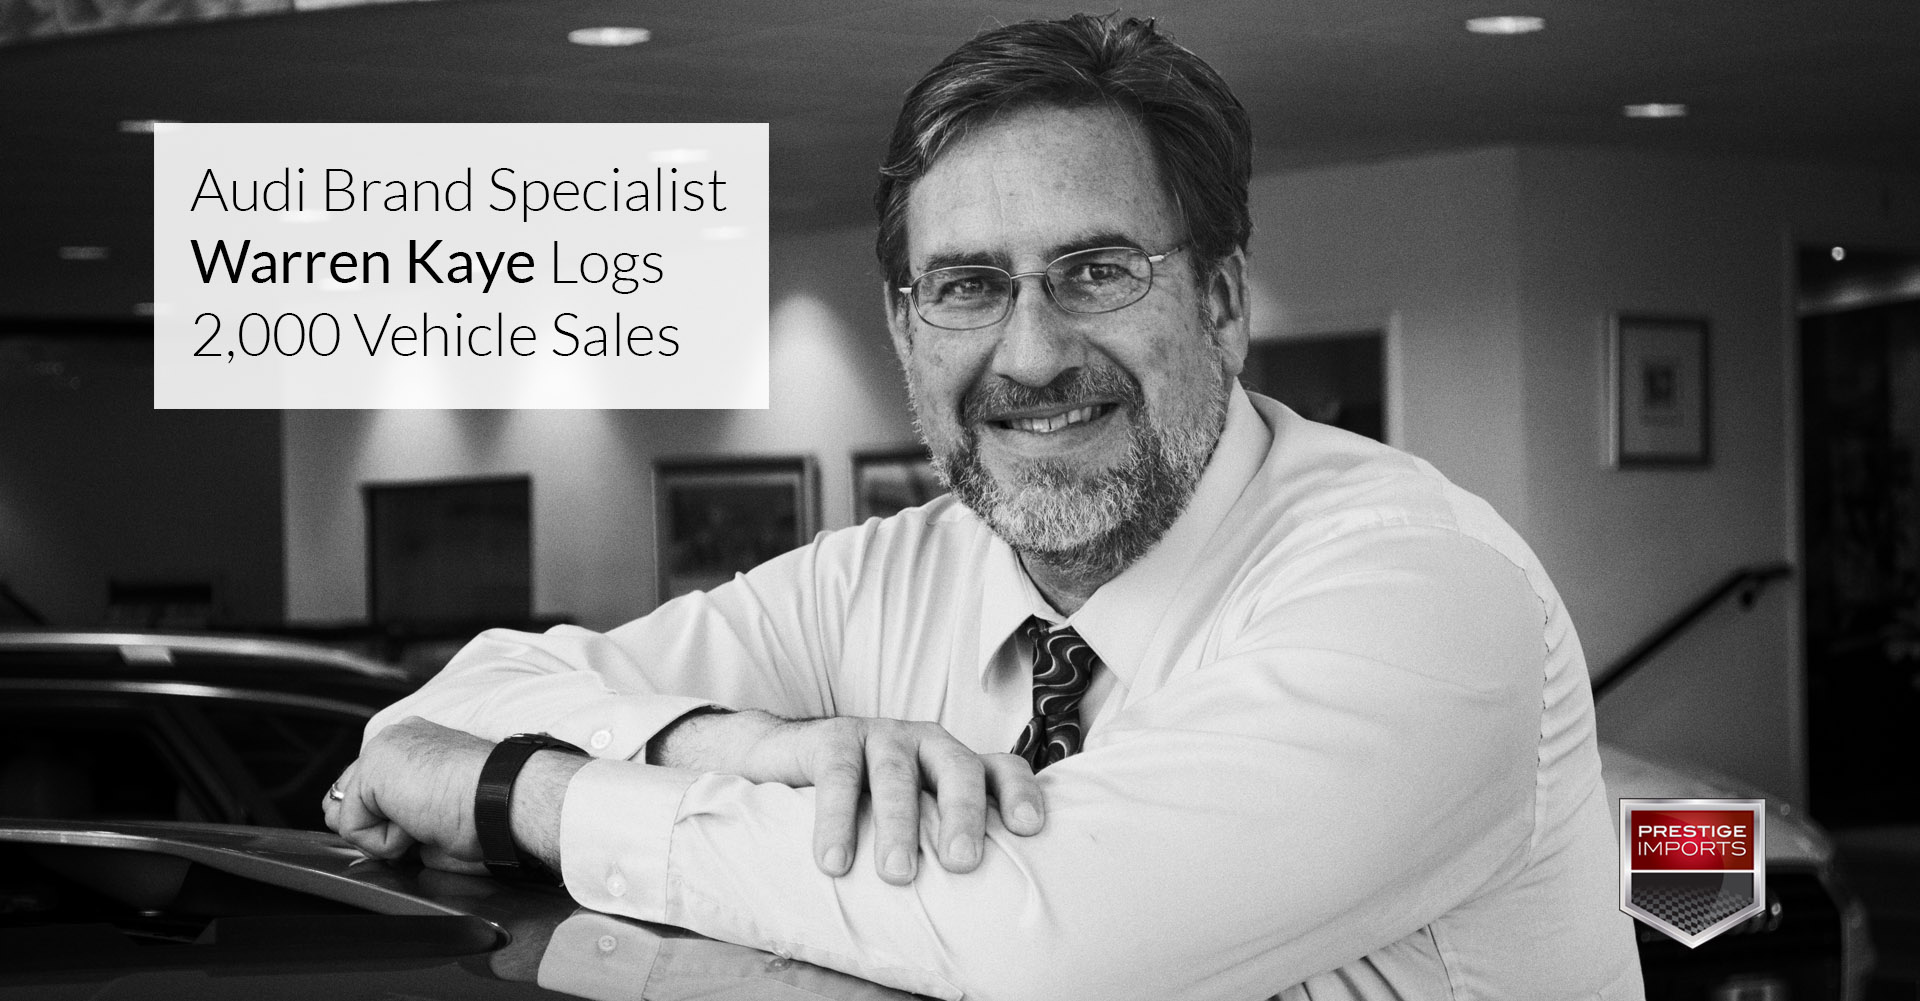 audi brand specialist warren kaye logs 2 000 vehicle sales